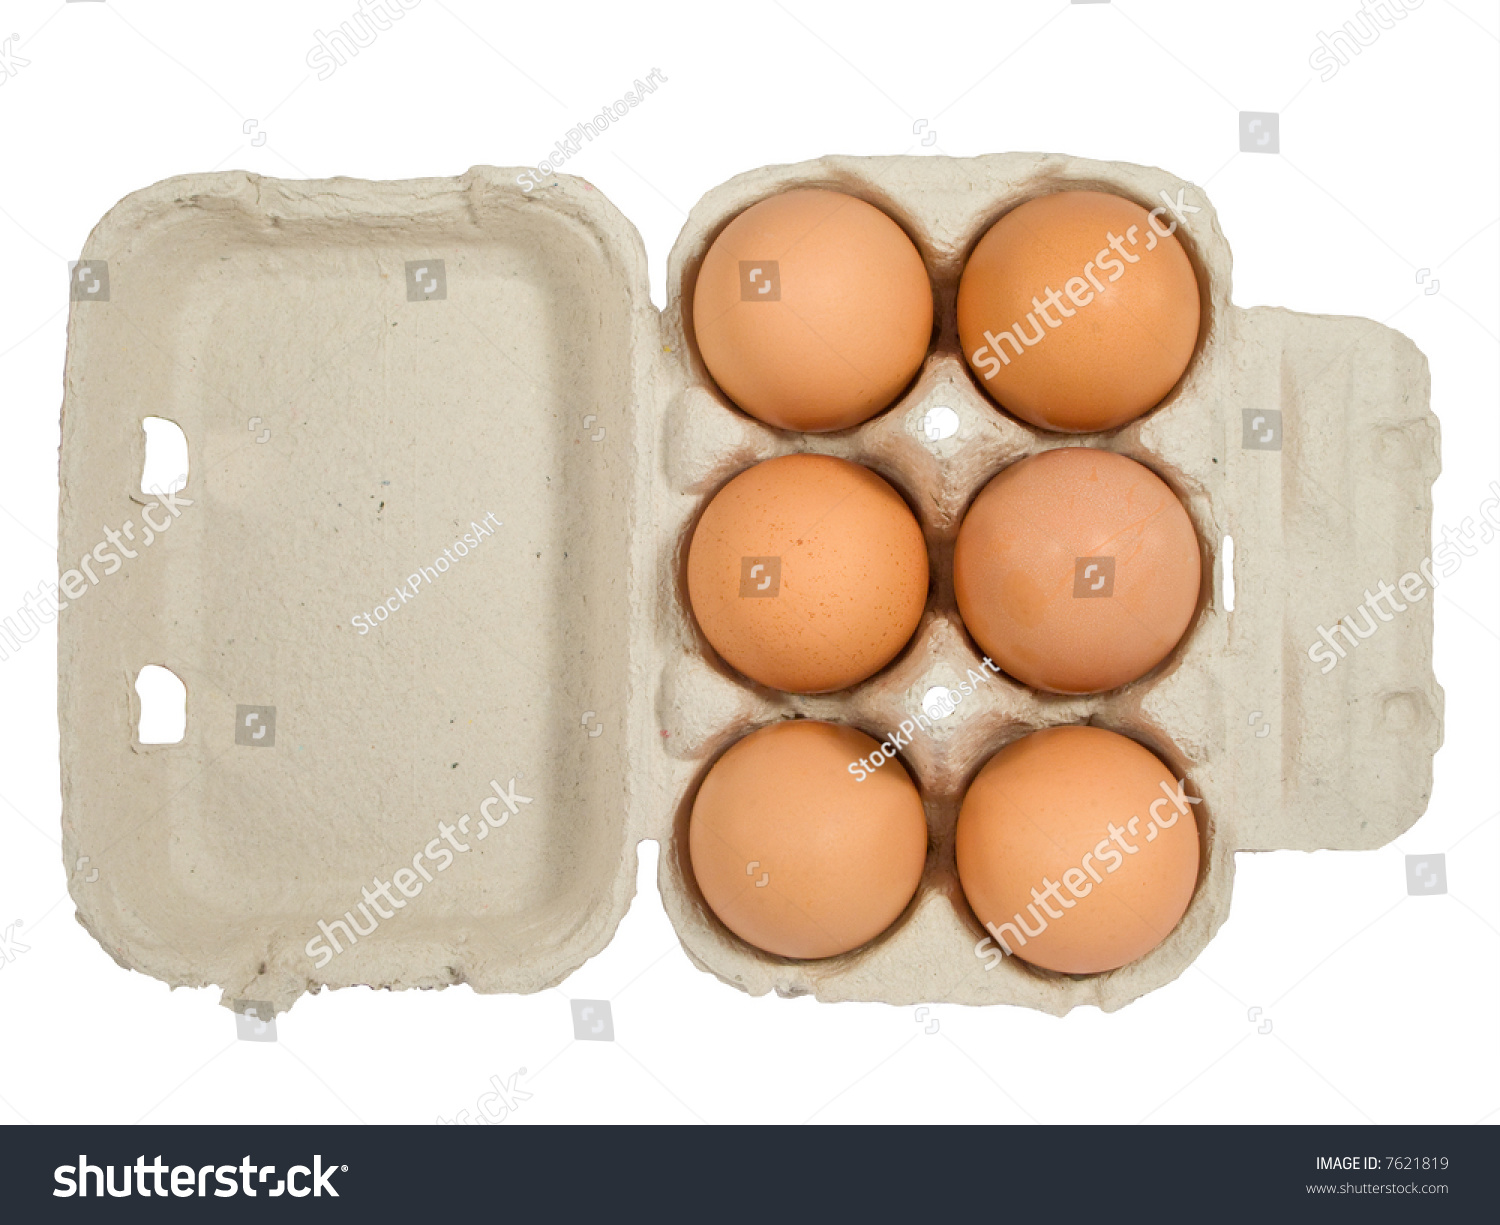 Half Dozen Fresh Eggs In Box Stock Photo 7621819 : Shutterstock